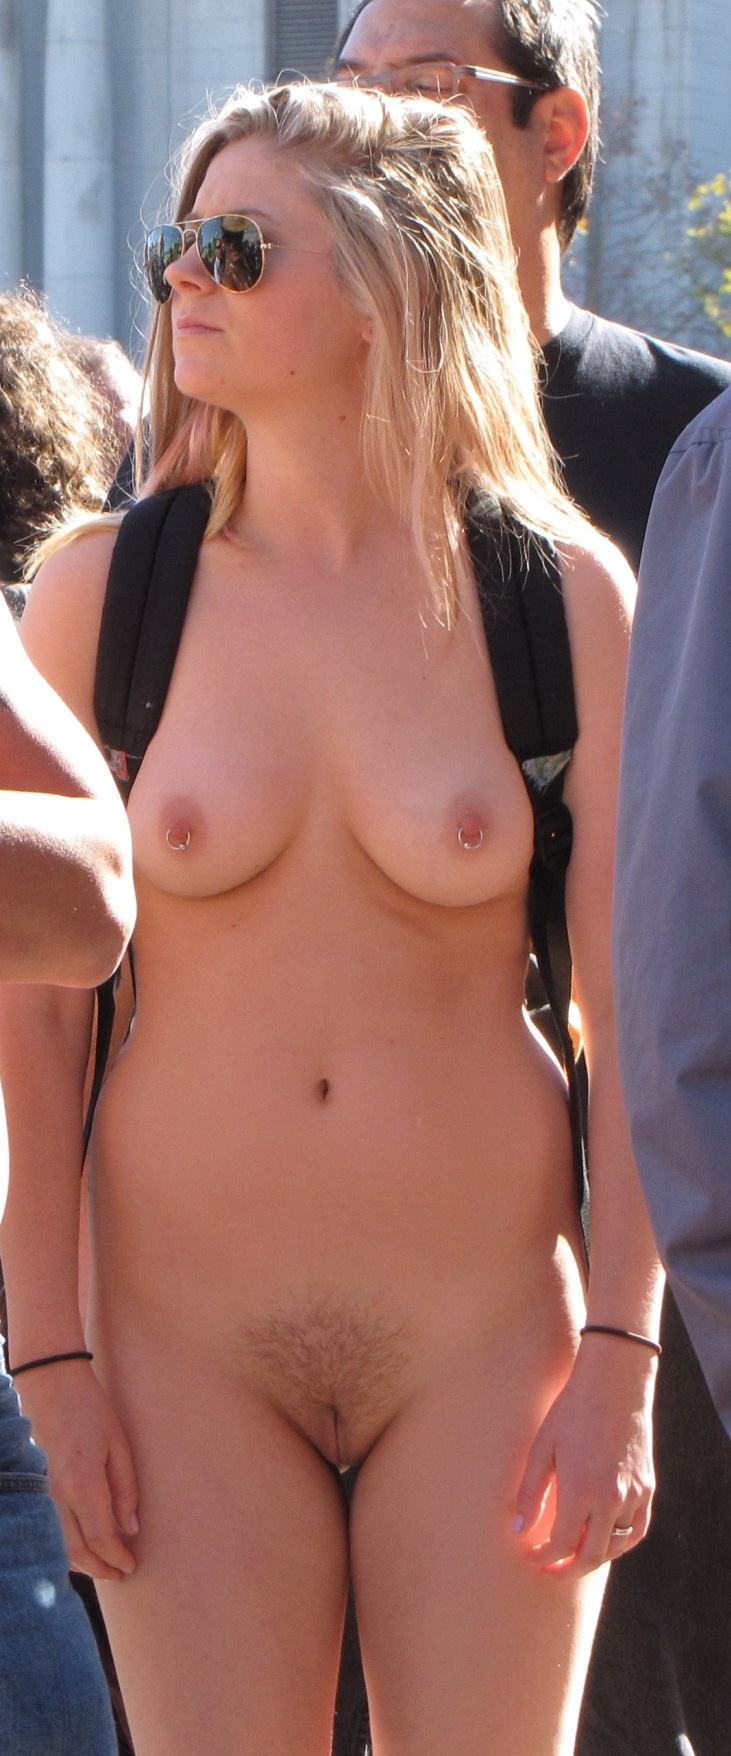 Girls go nude in public-7050